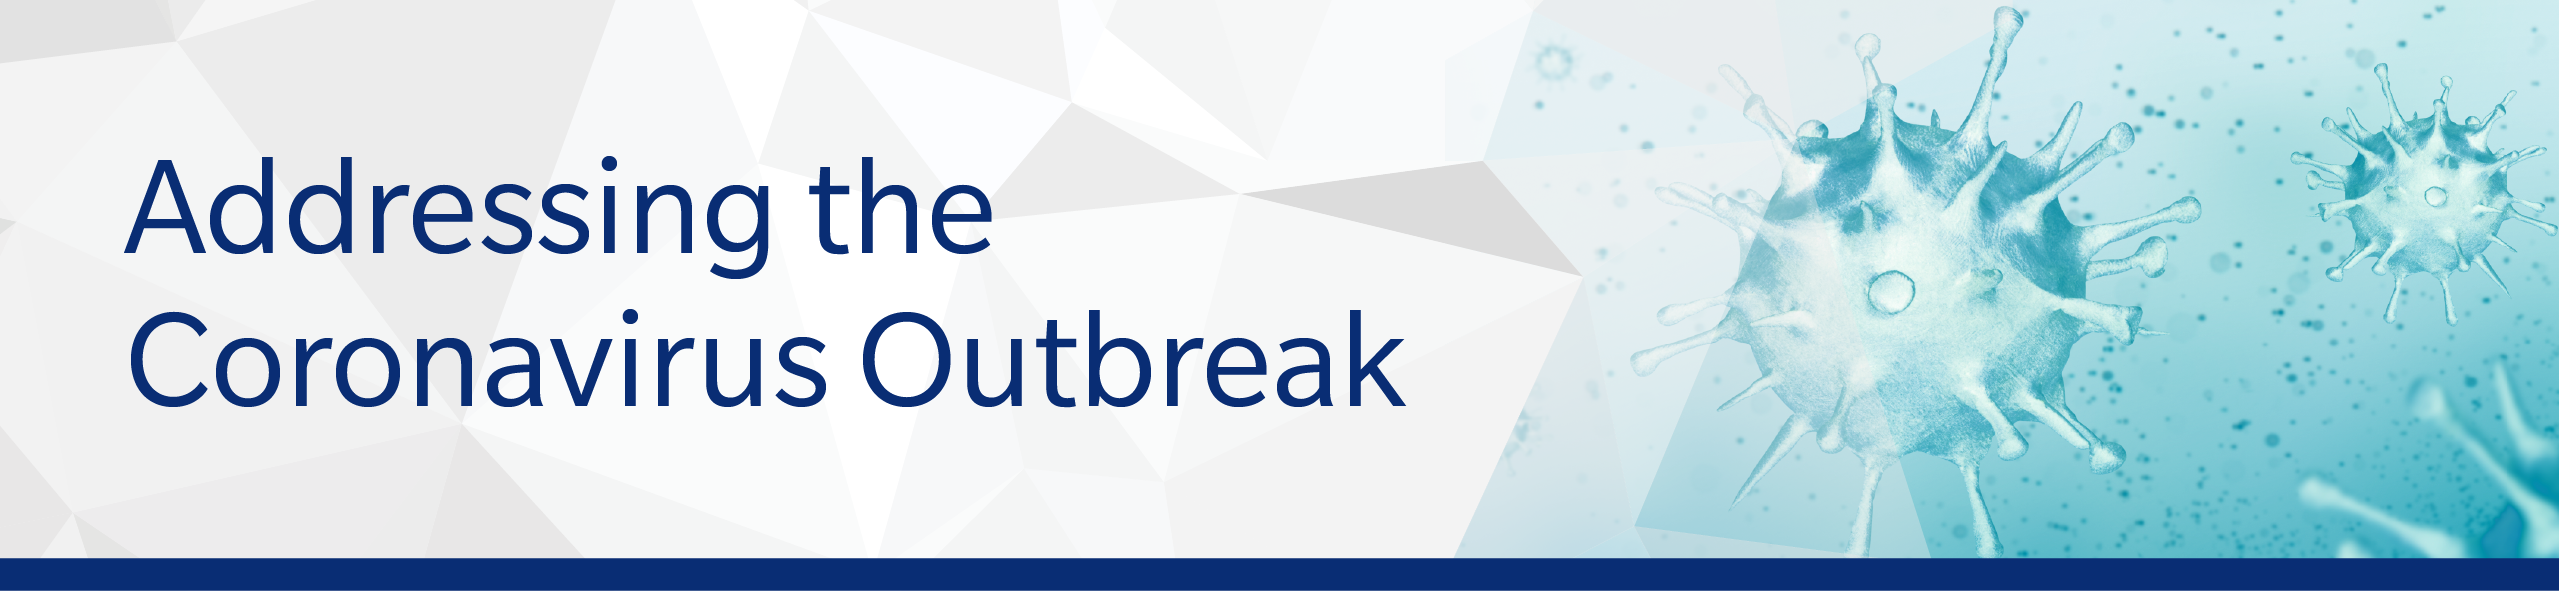 Addressing COVID 19 Outbreak Header Image